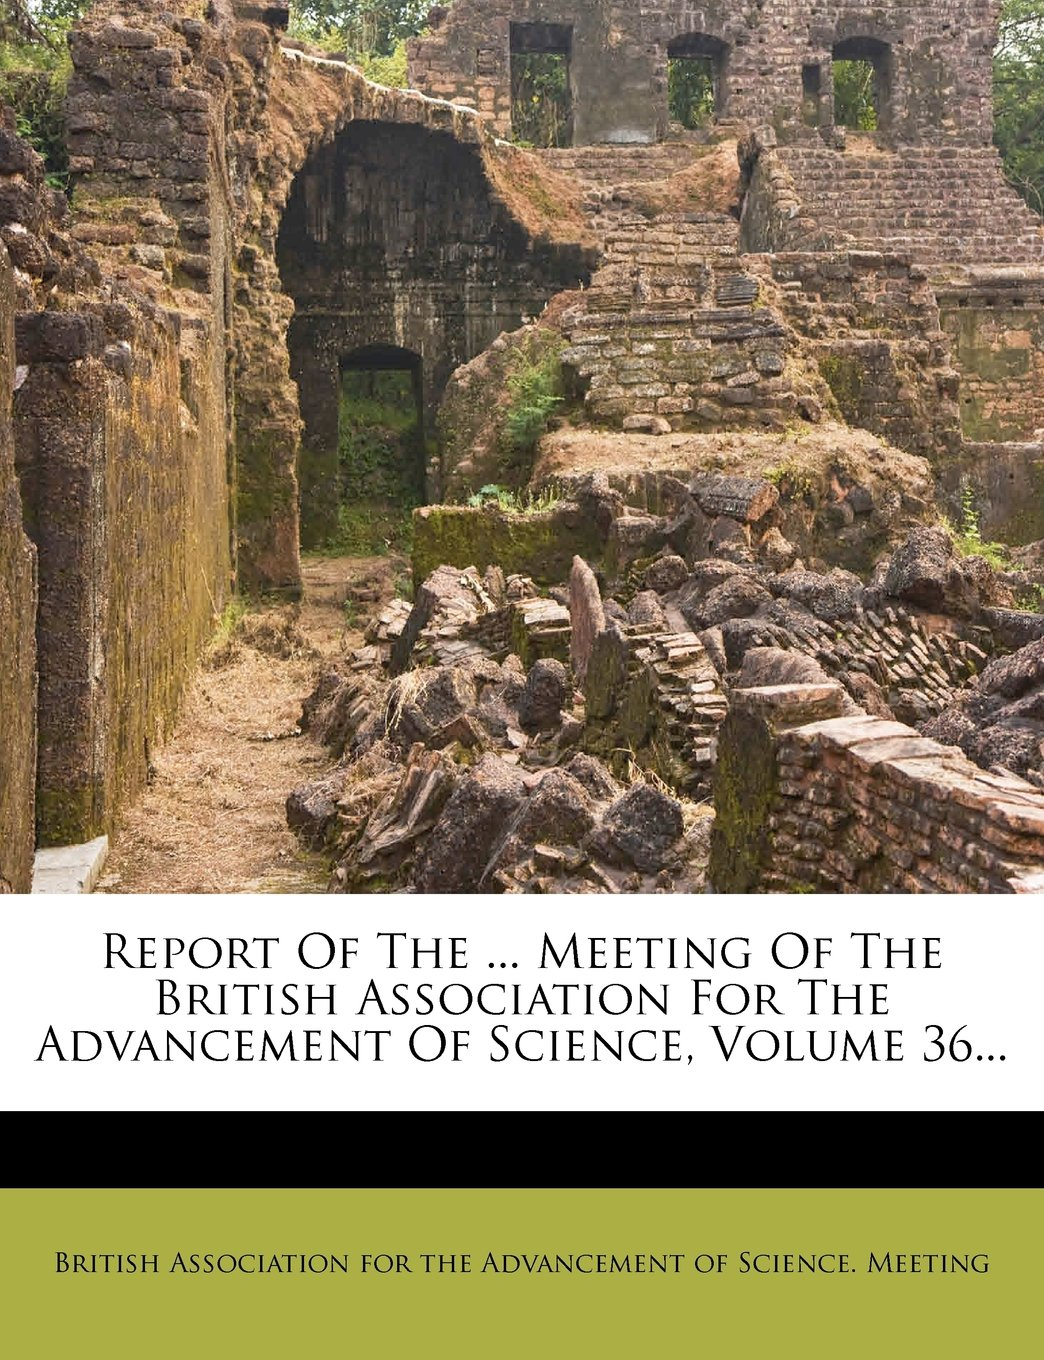 Report Of The ... Meeting Of The British Association For The Advancement Of Science, Volume 36... pdf